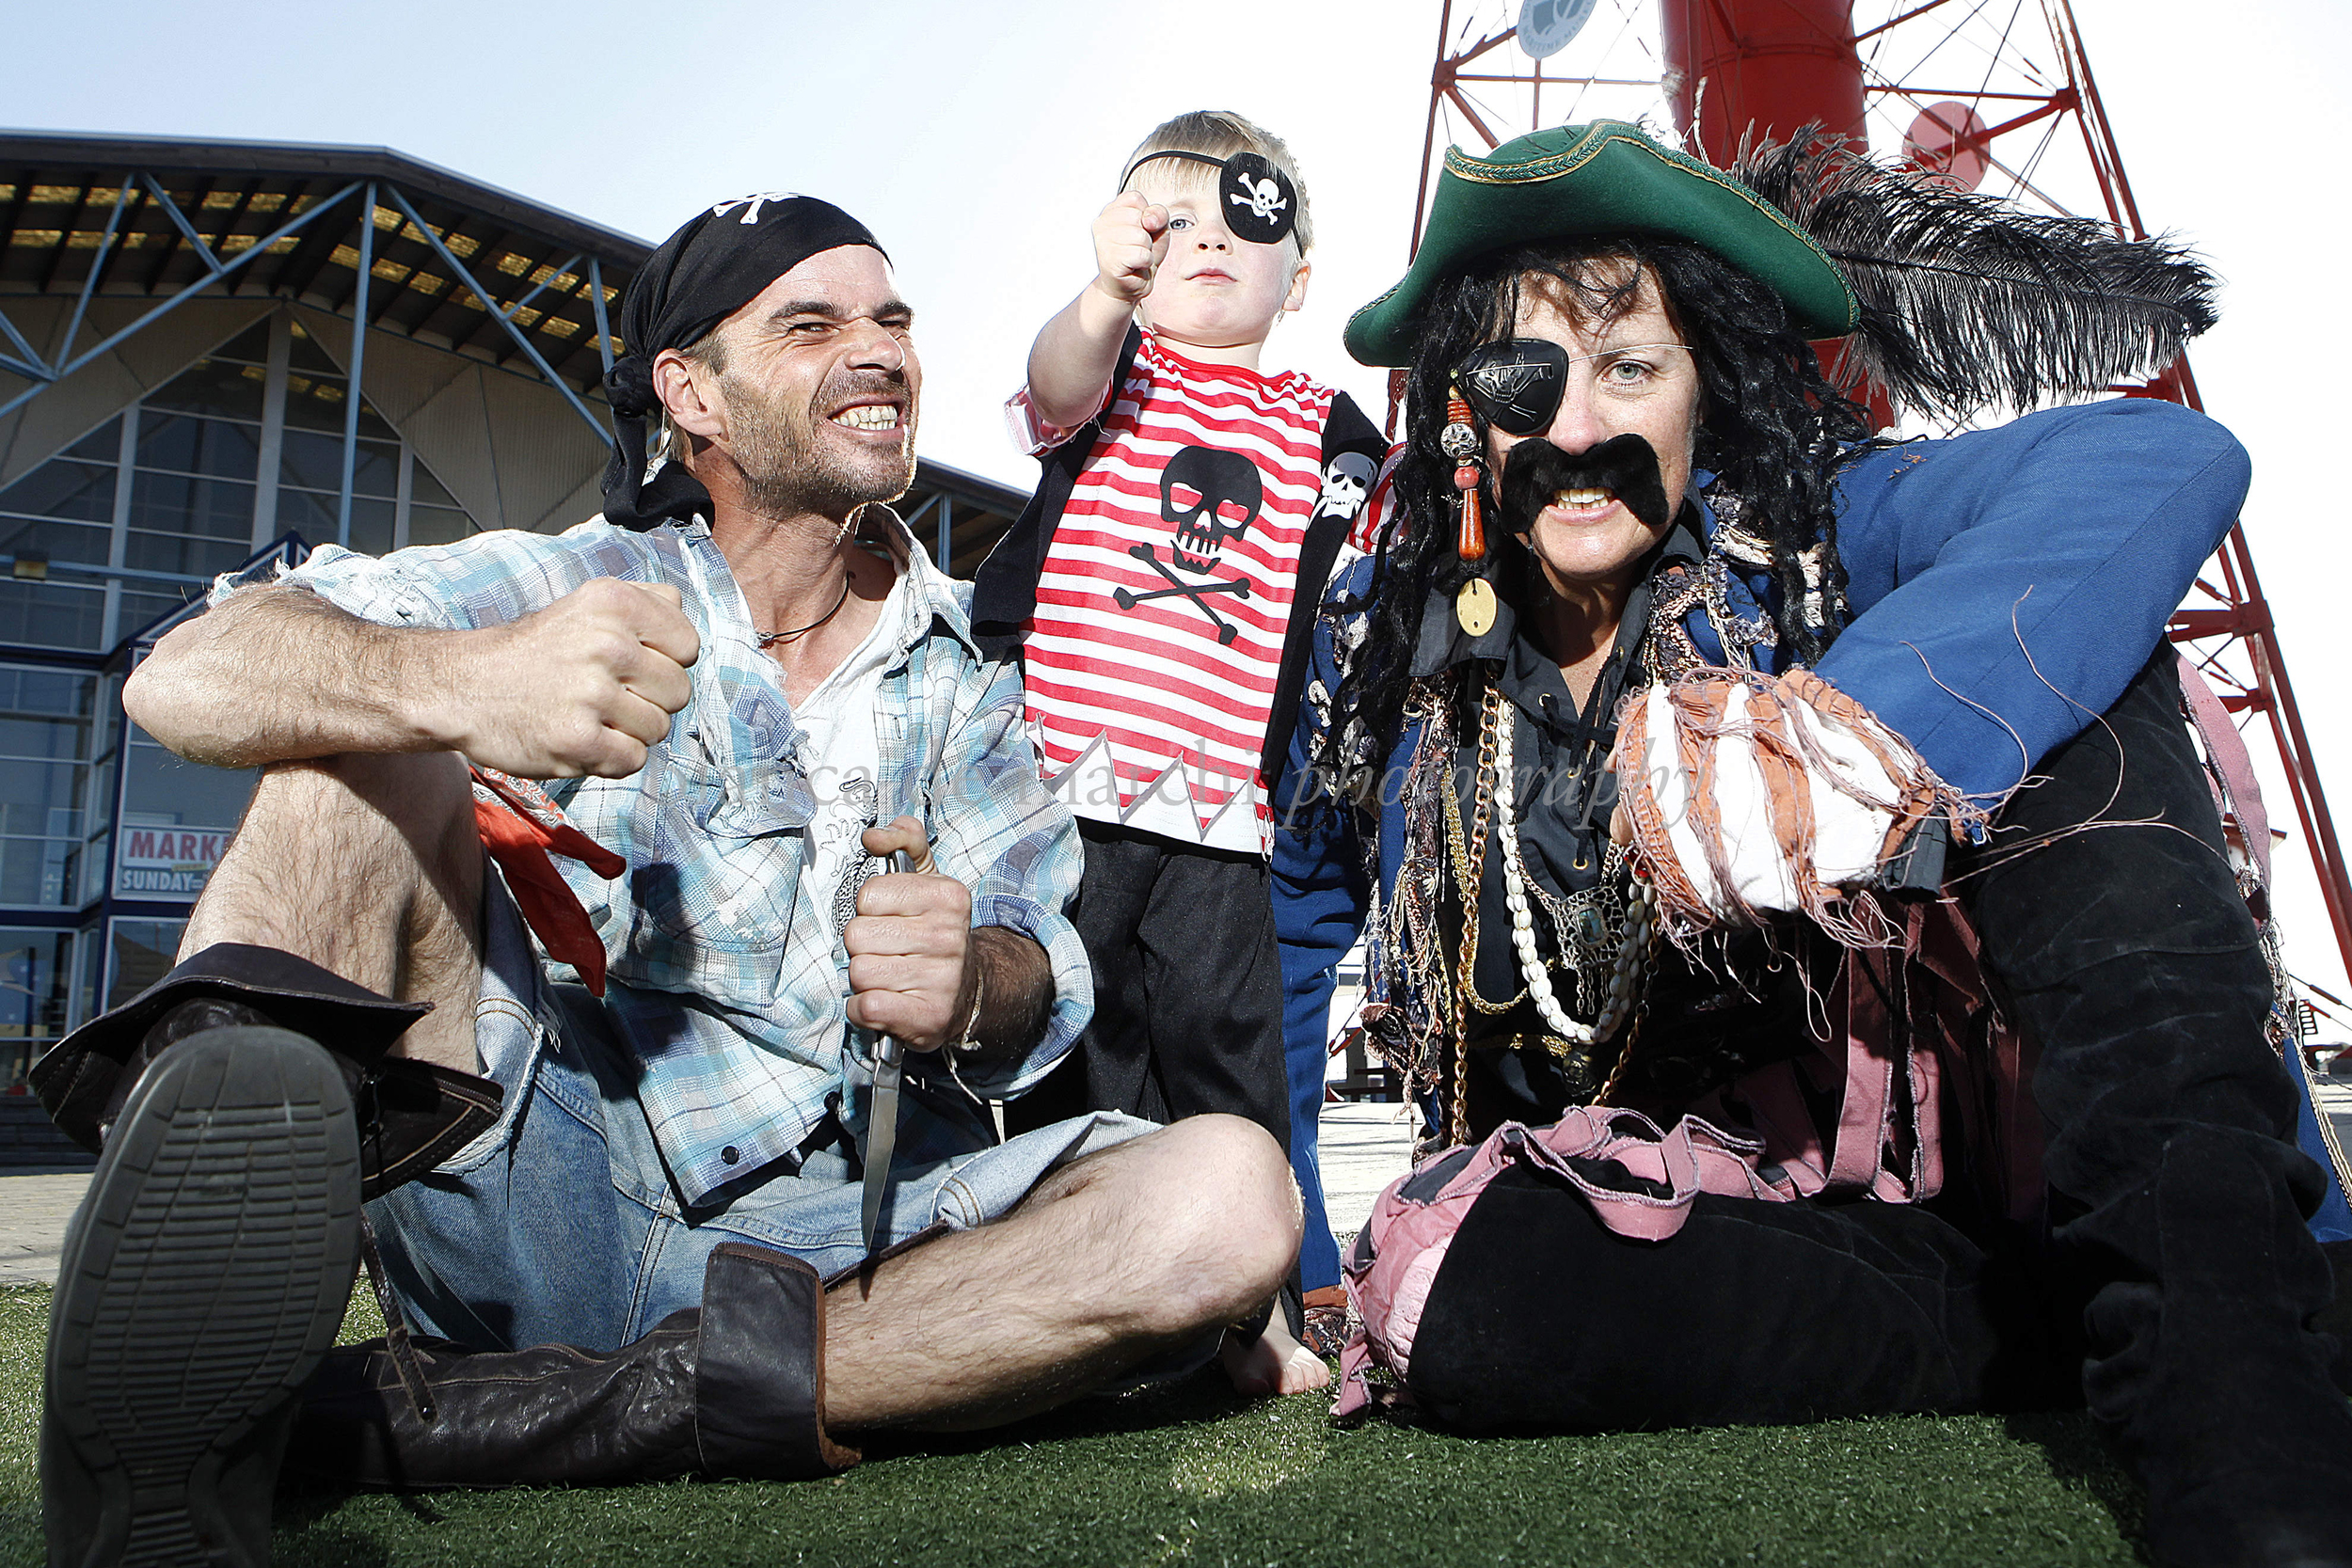 CHP_Export_92924337_International Talk like a Pirate Day - Open Ship Days Open Day for %C3%92Internationa.jpg